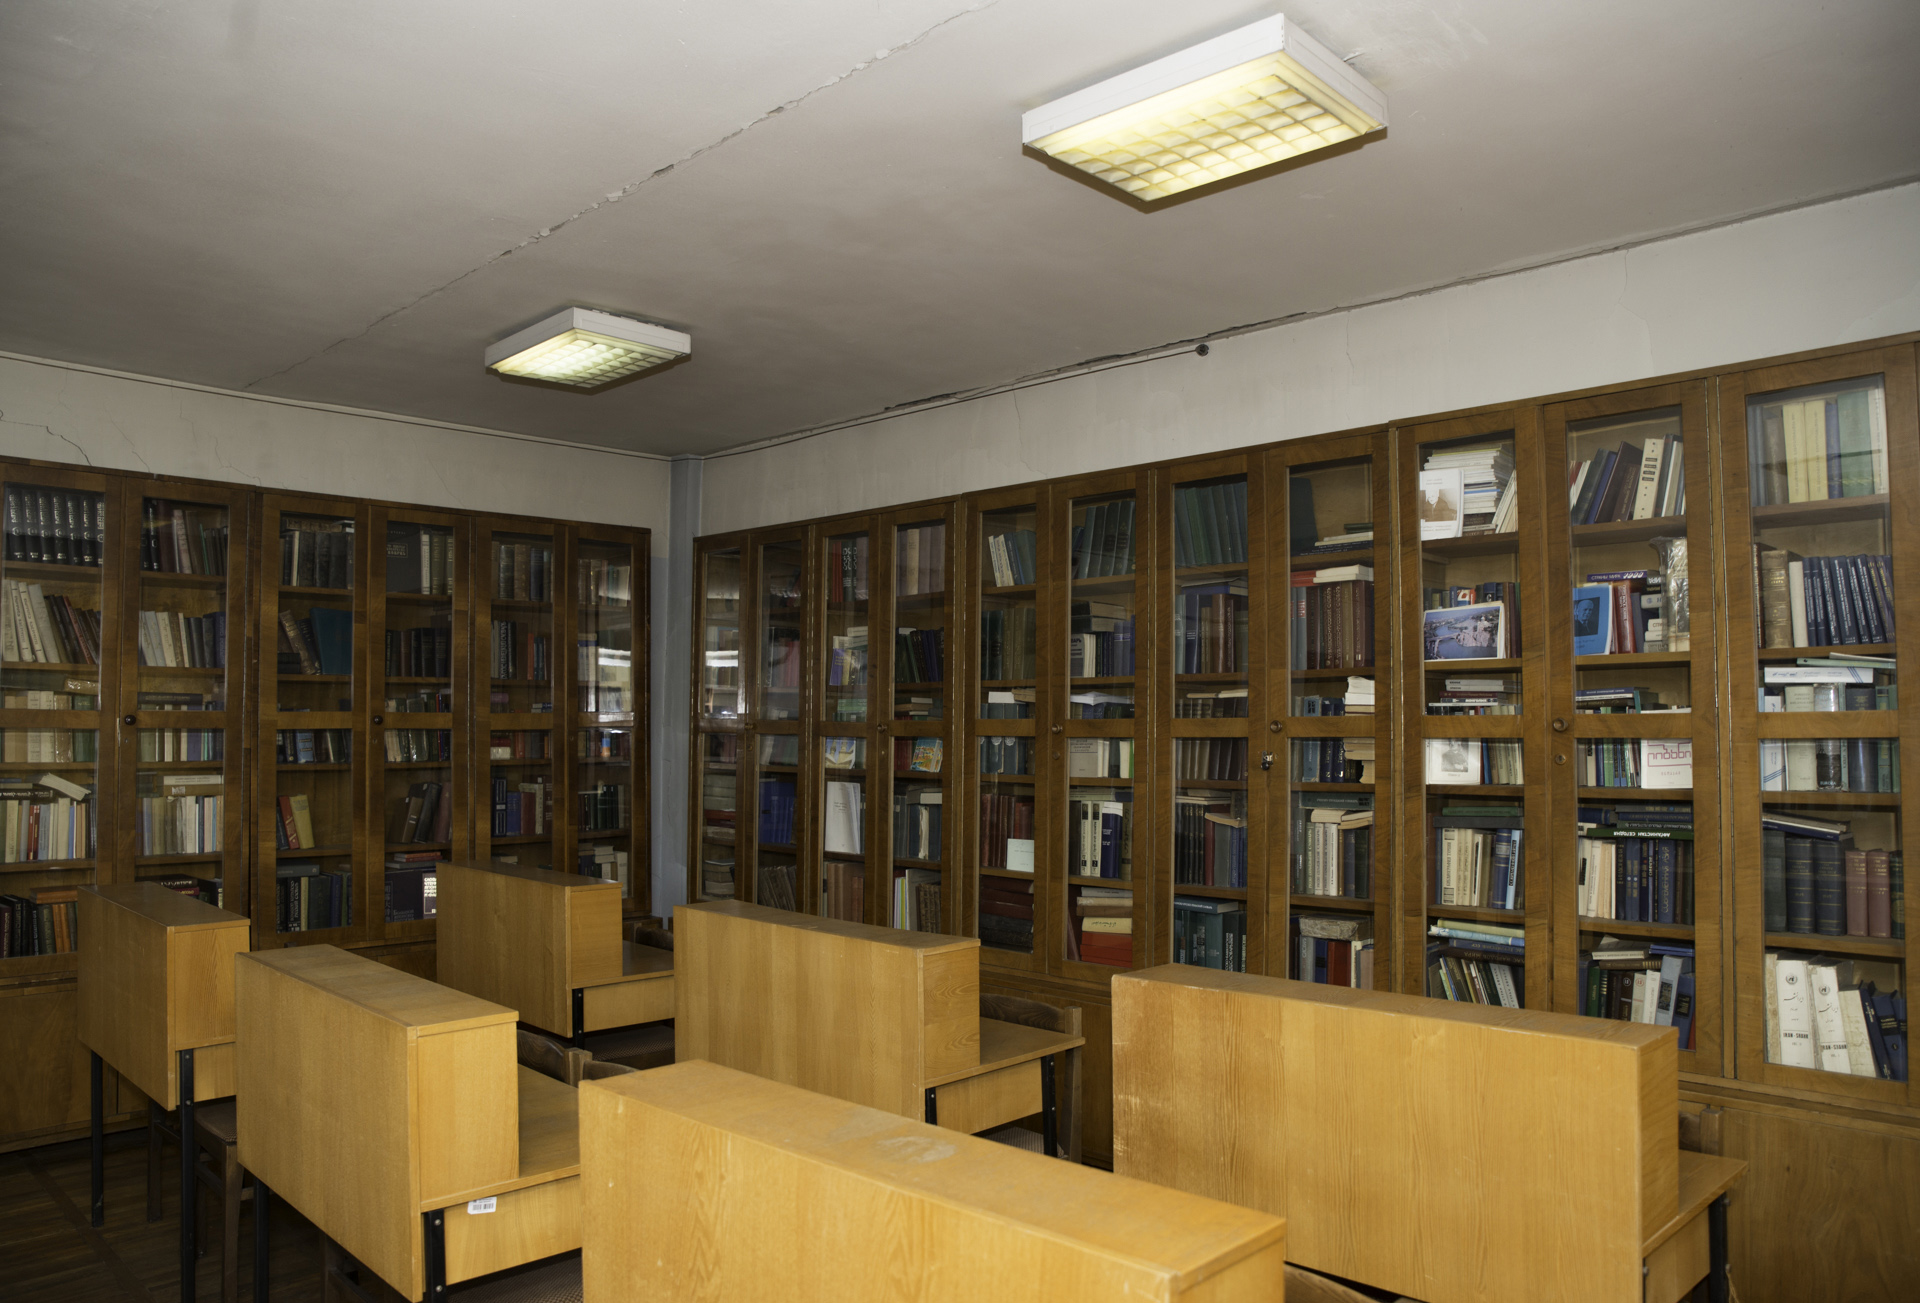 THE HALL OF ORIENTAL STUDIES